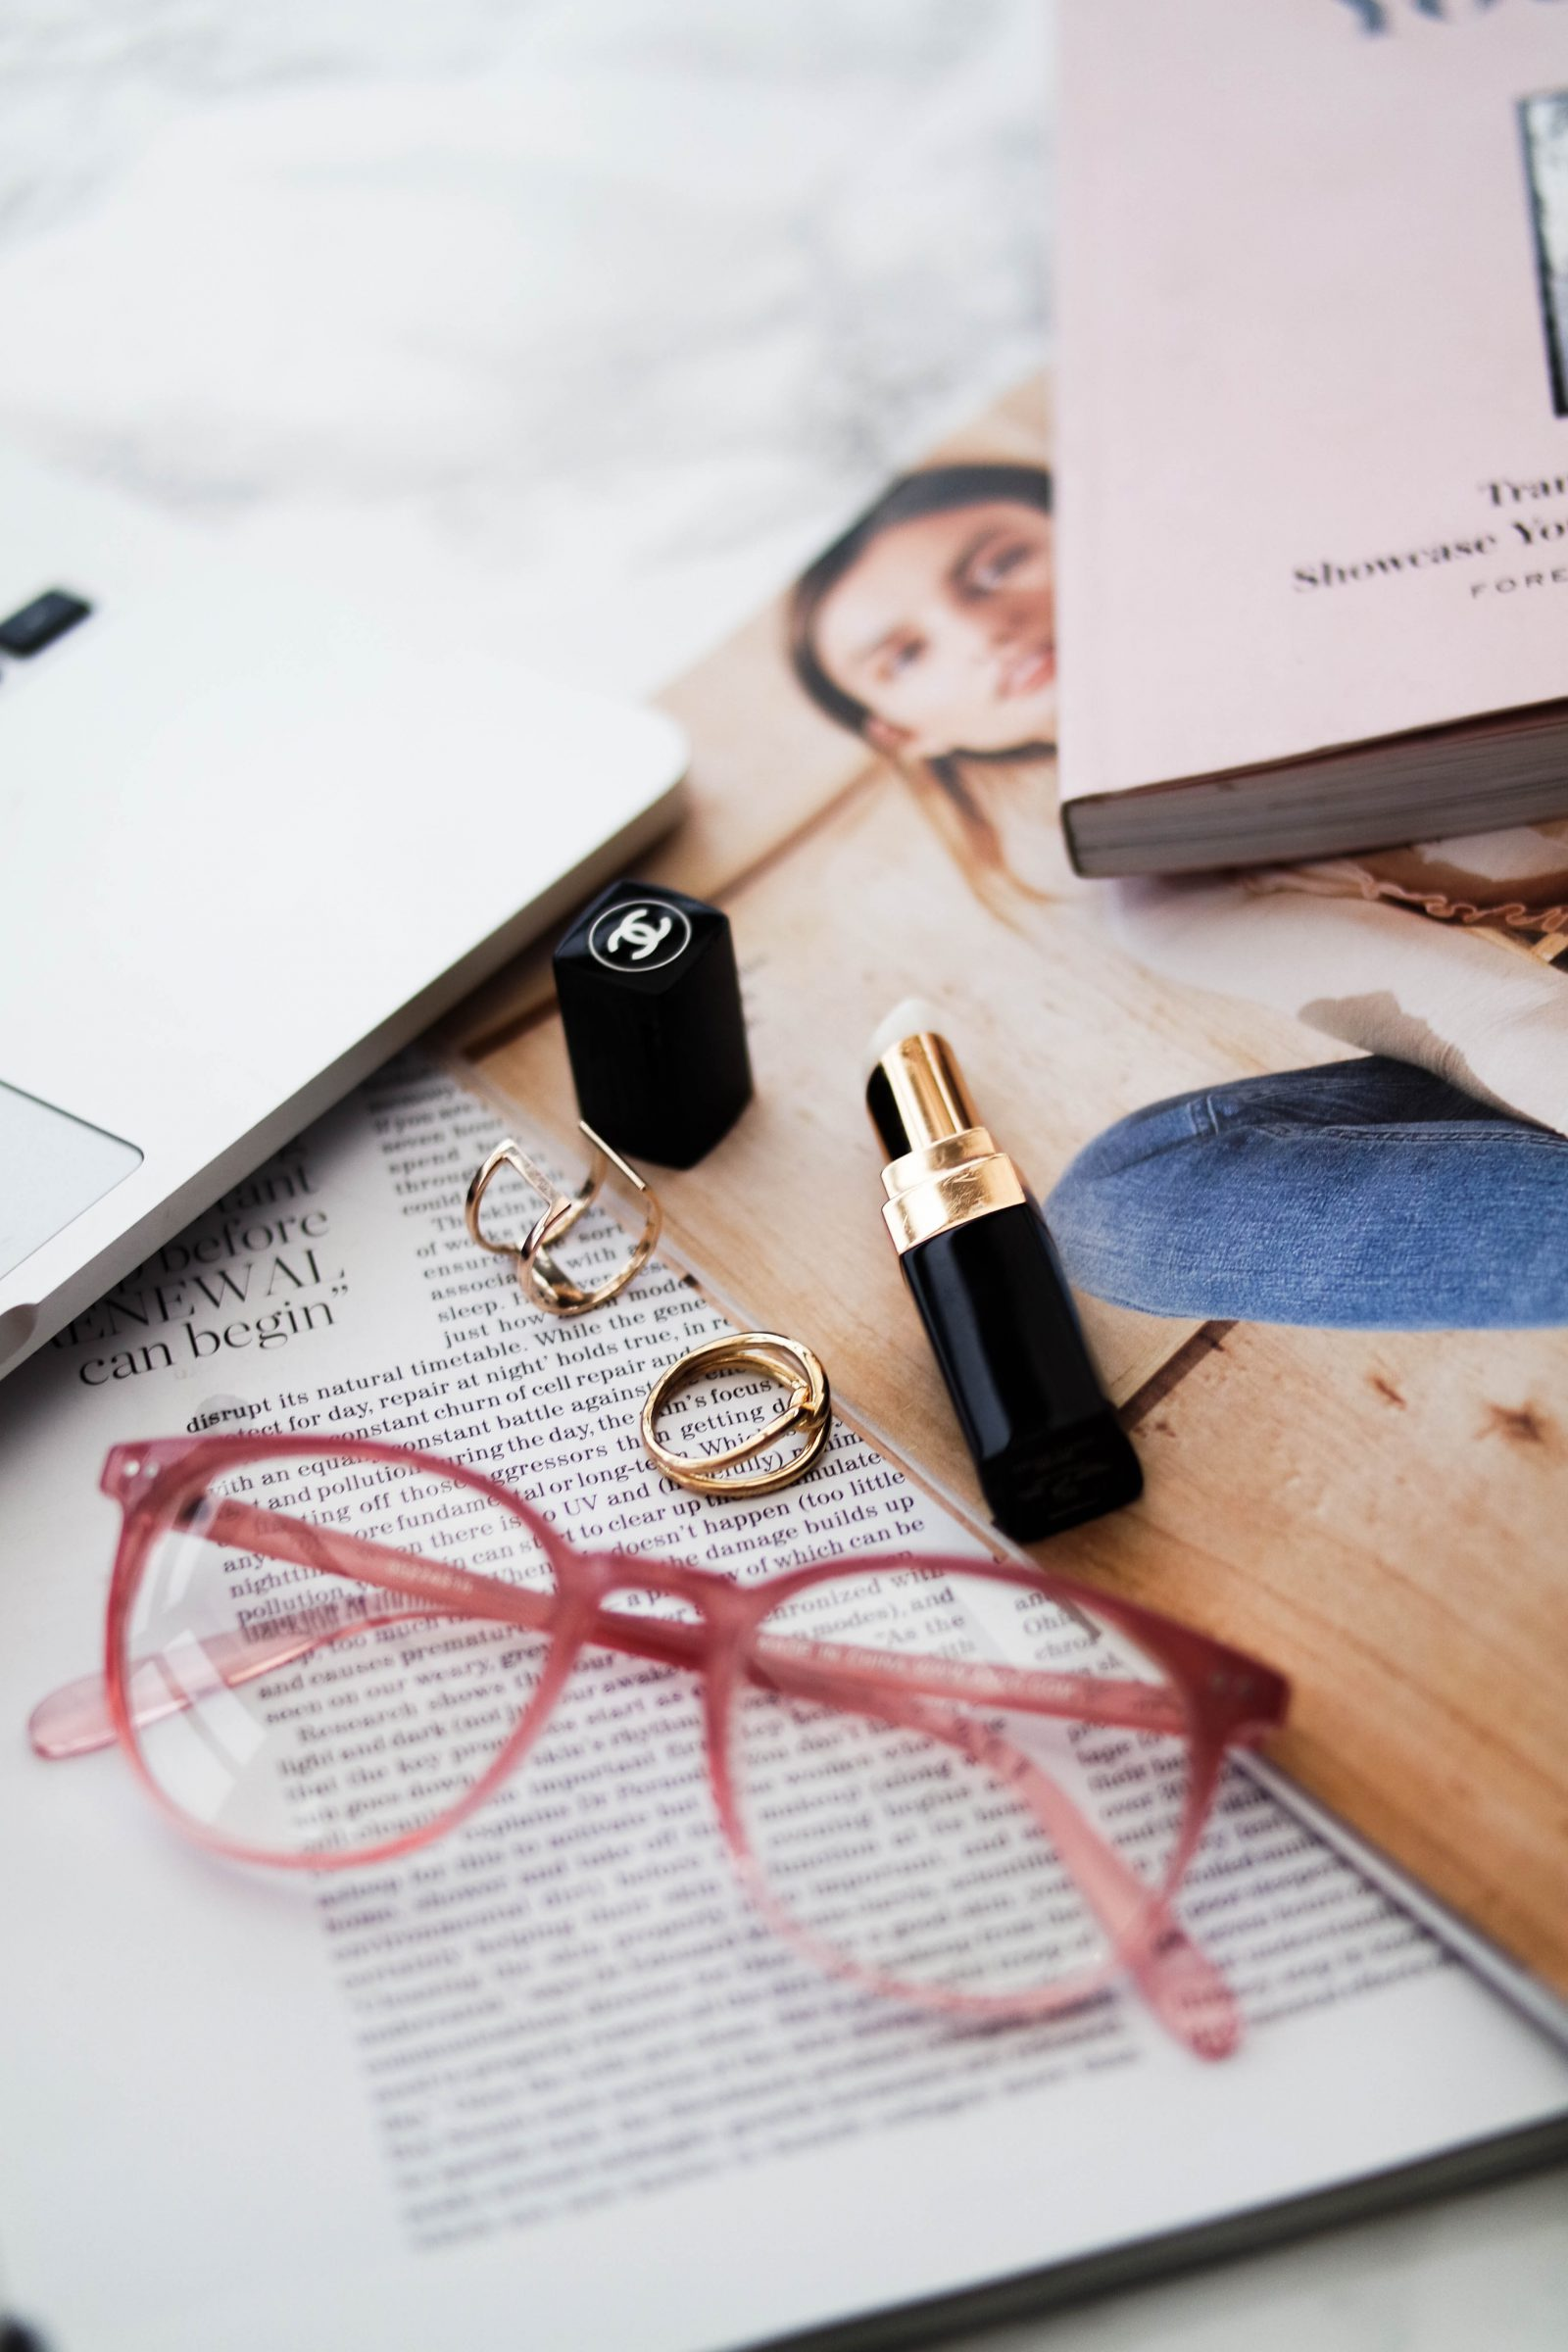 How To Start A Blog Chanel Lipbalm